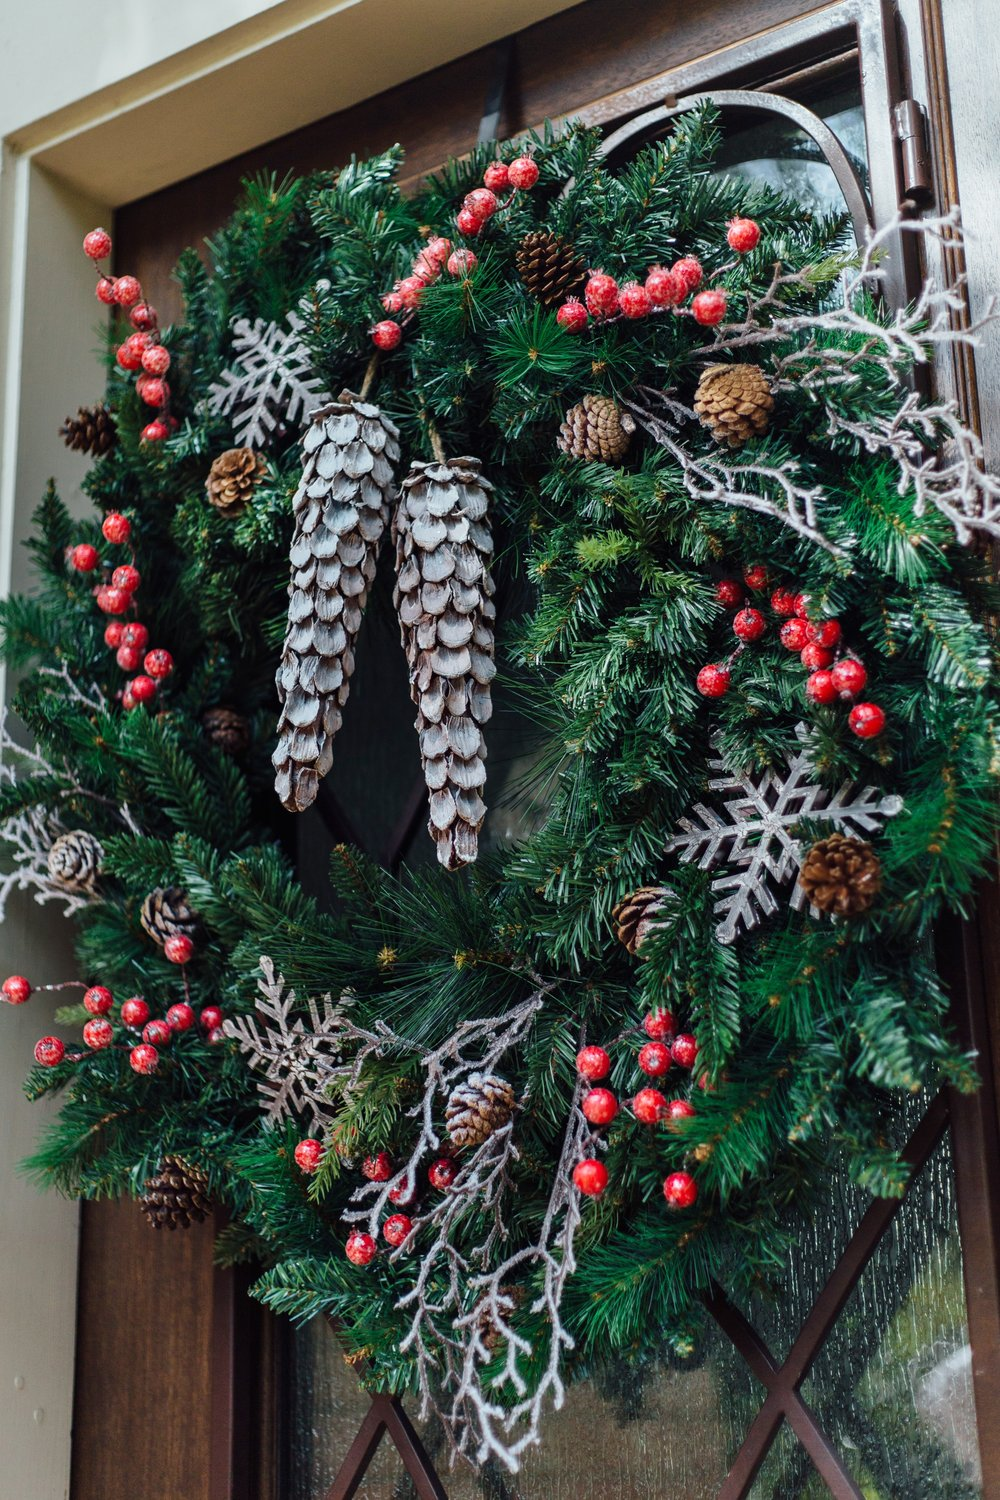 DIY Woodlands Christmas Wreath - Carla Aston, Photographer - Tori Aston